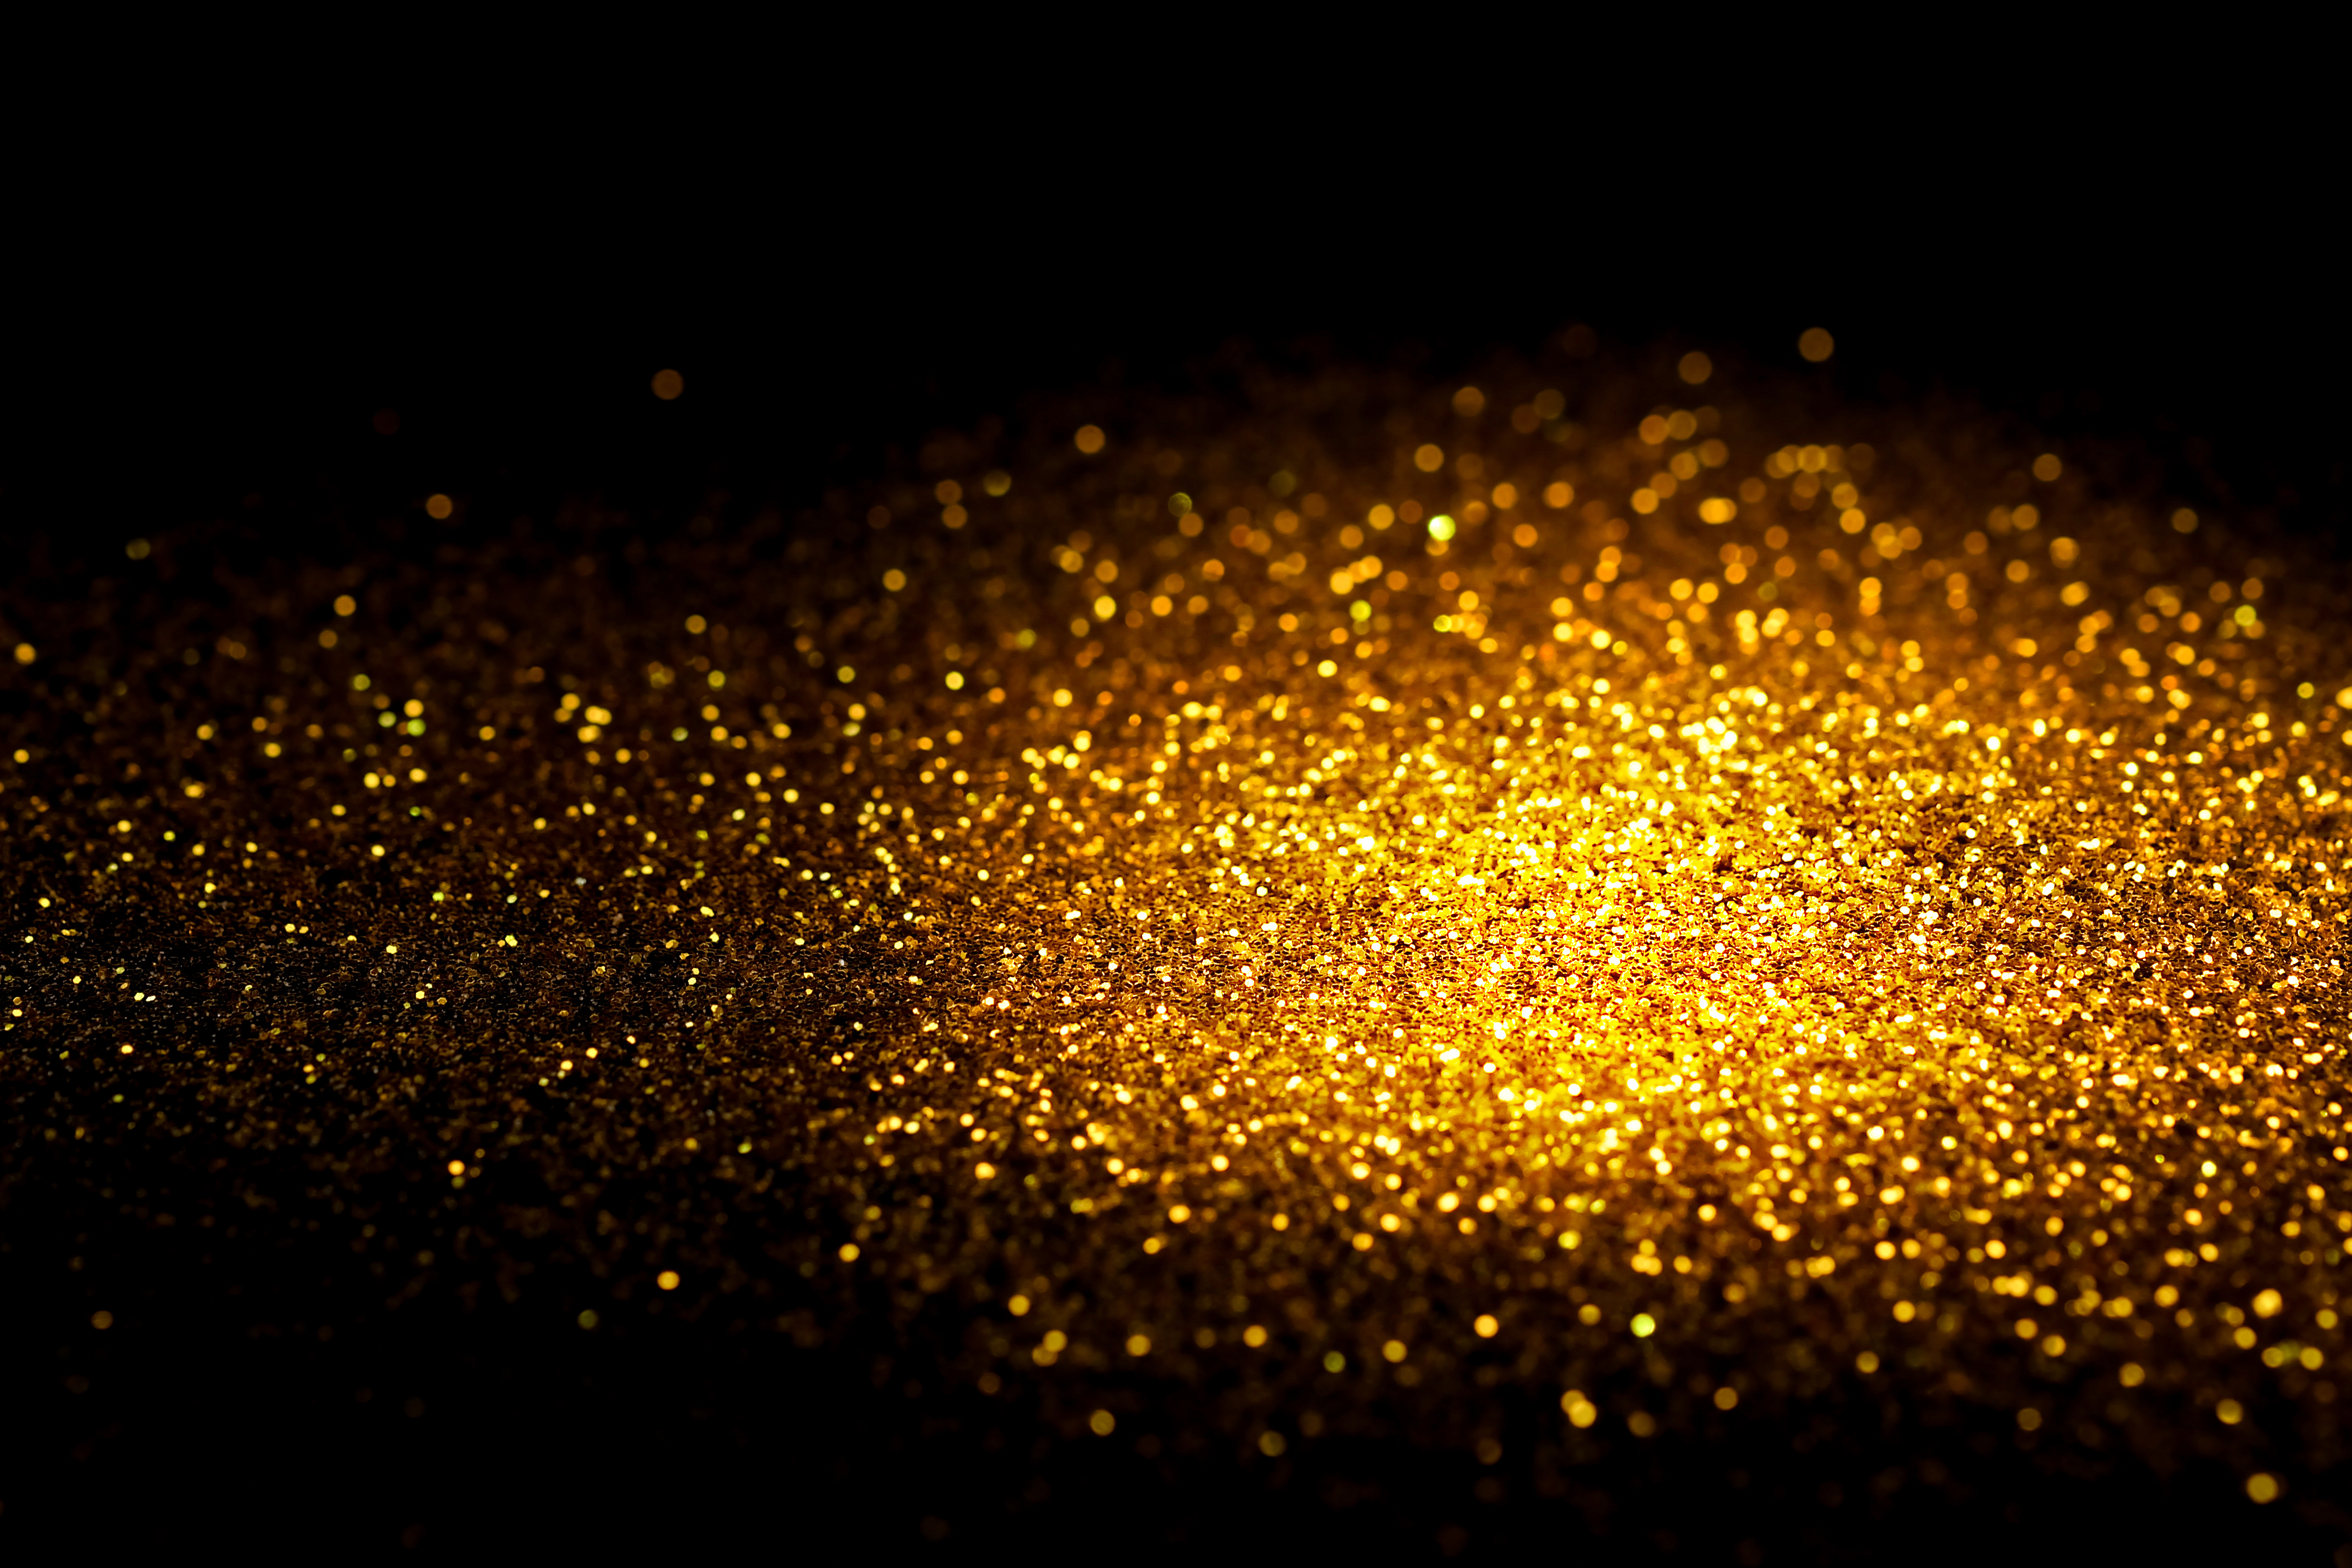 black and gold sprinkle gold glitter dust black background #5108